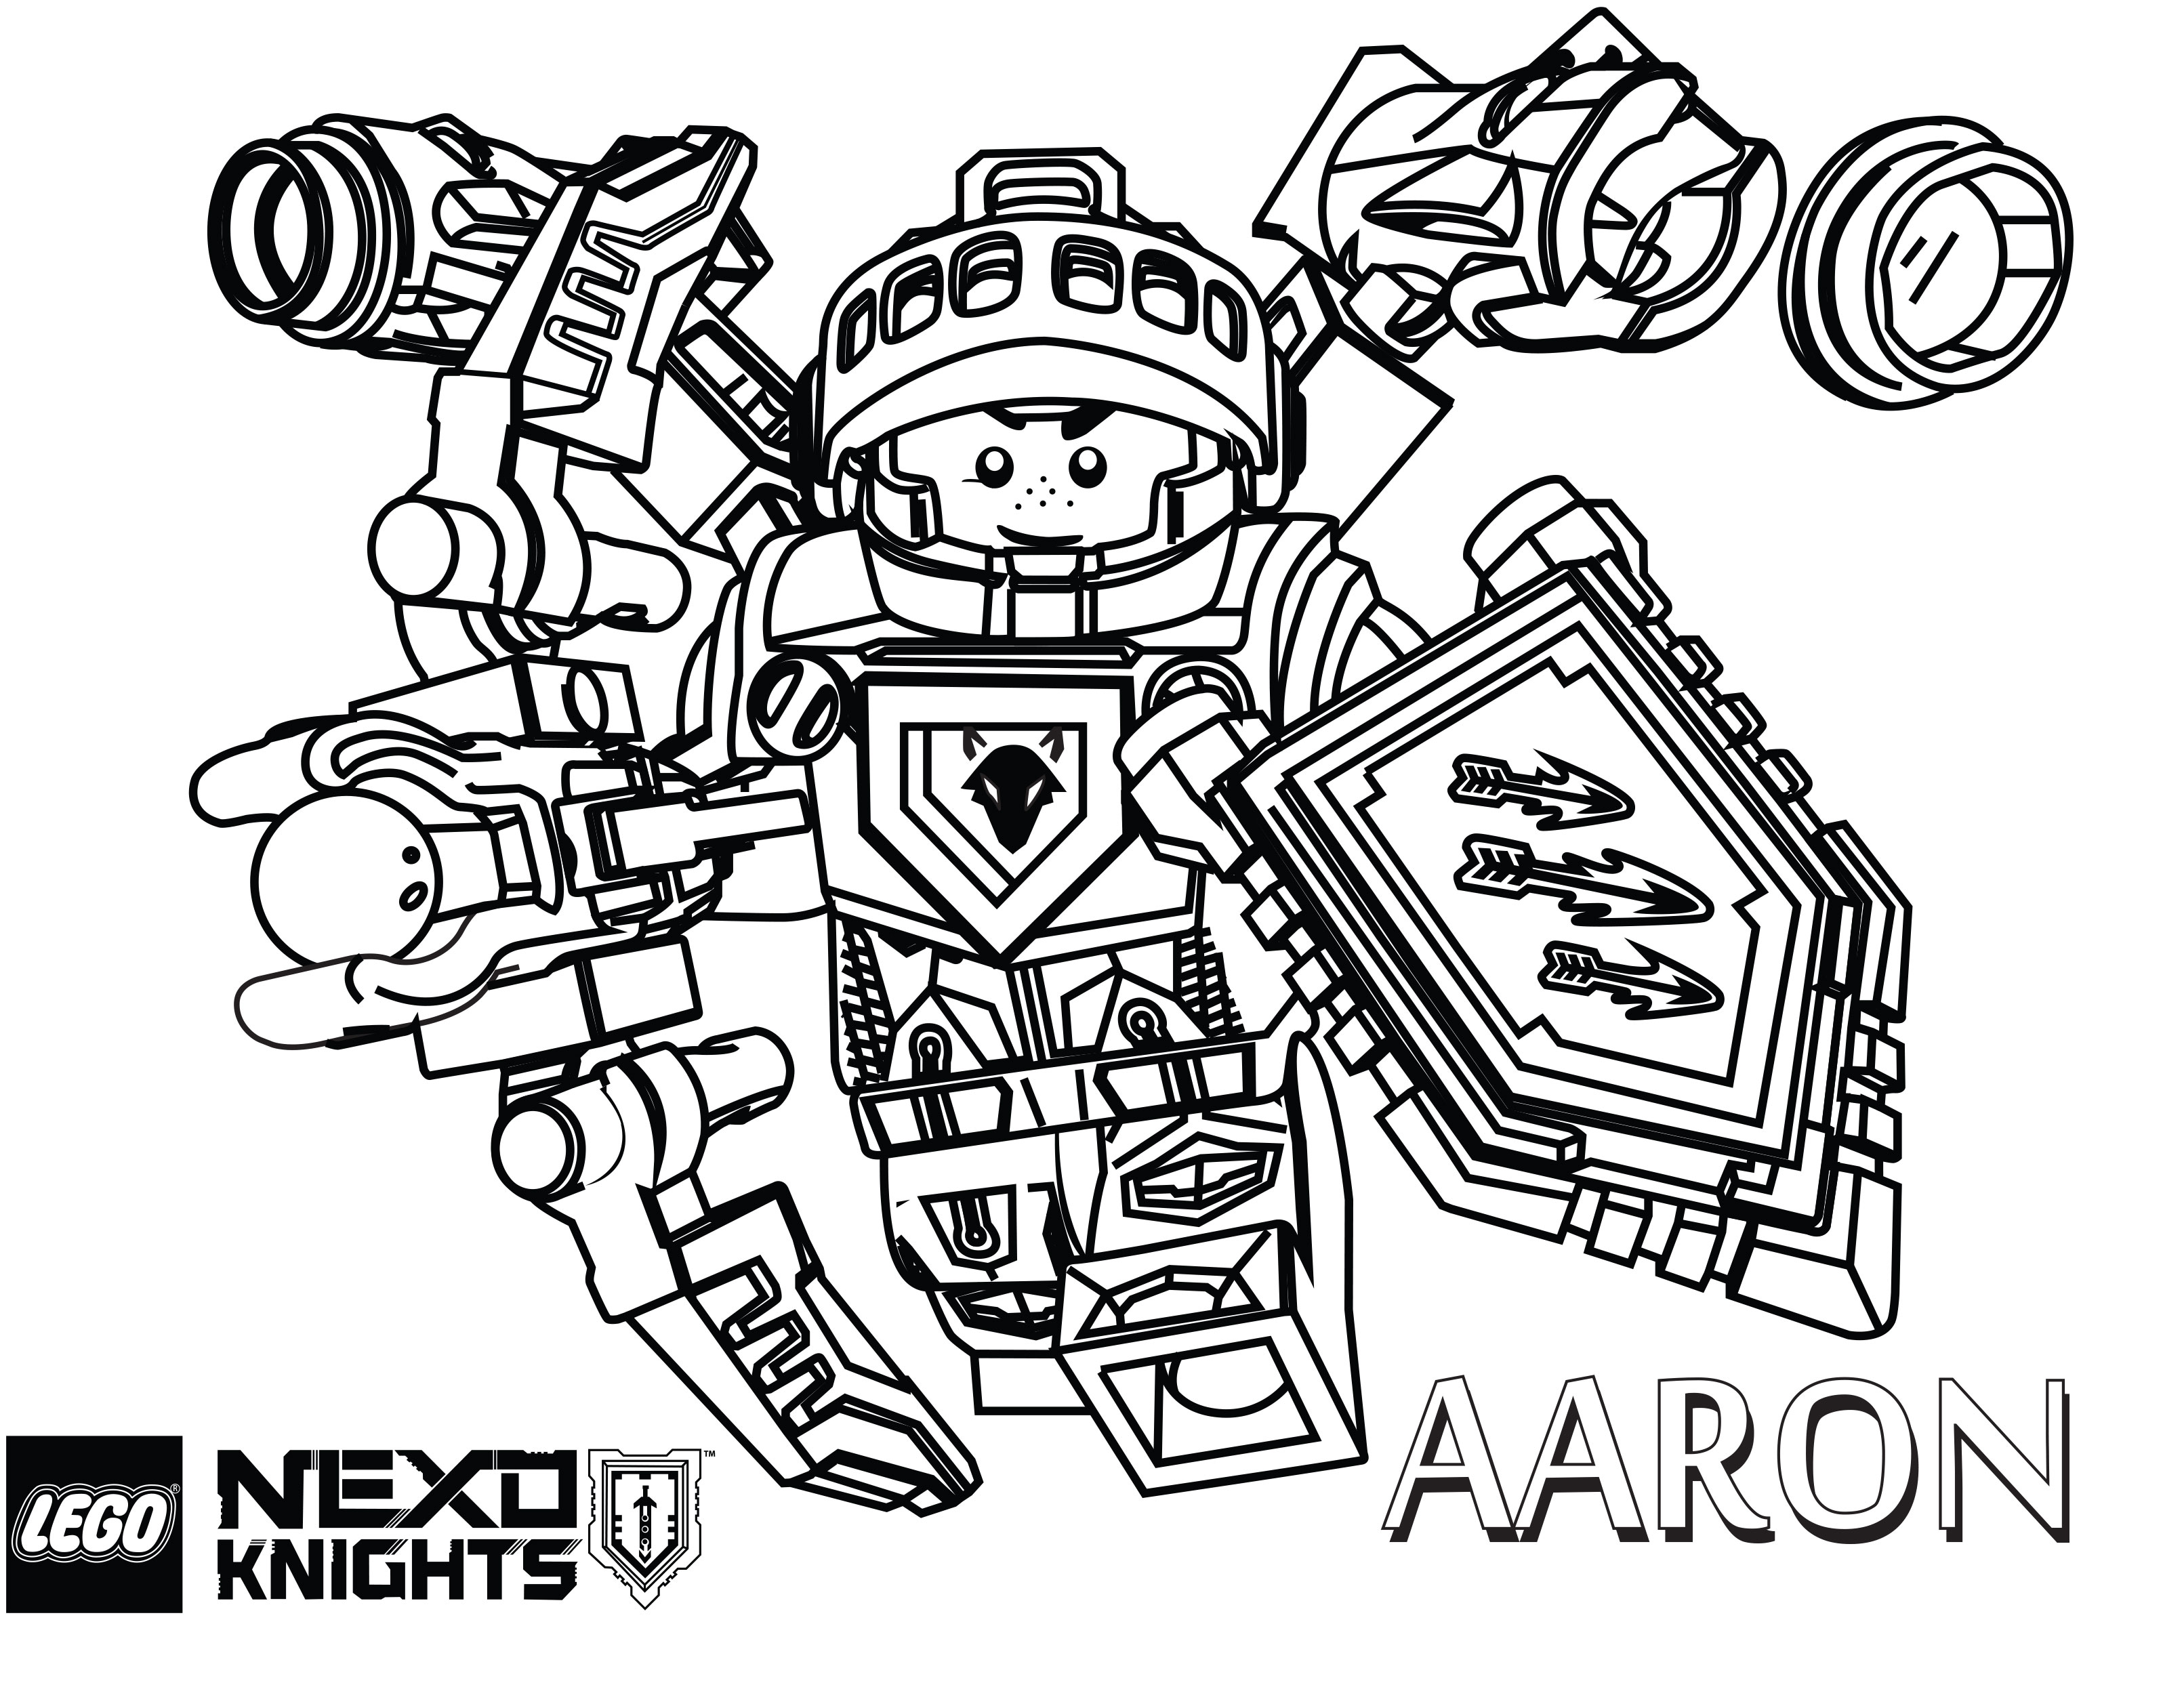 LEGO Nexo Knights Coloring Pages - The Brick Fan | The Brick Fan